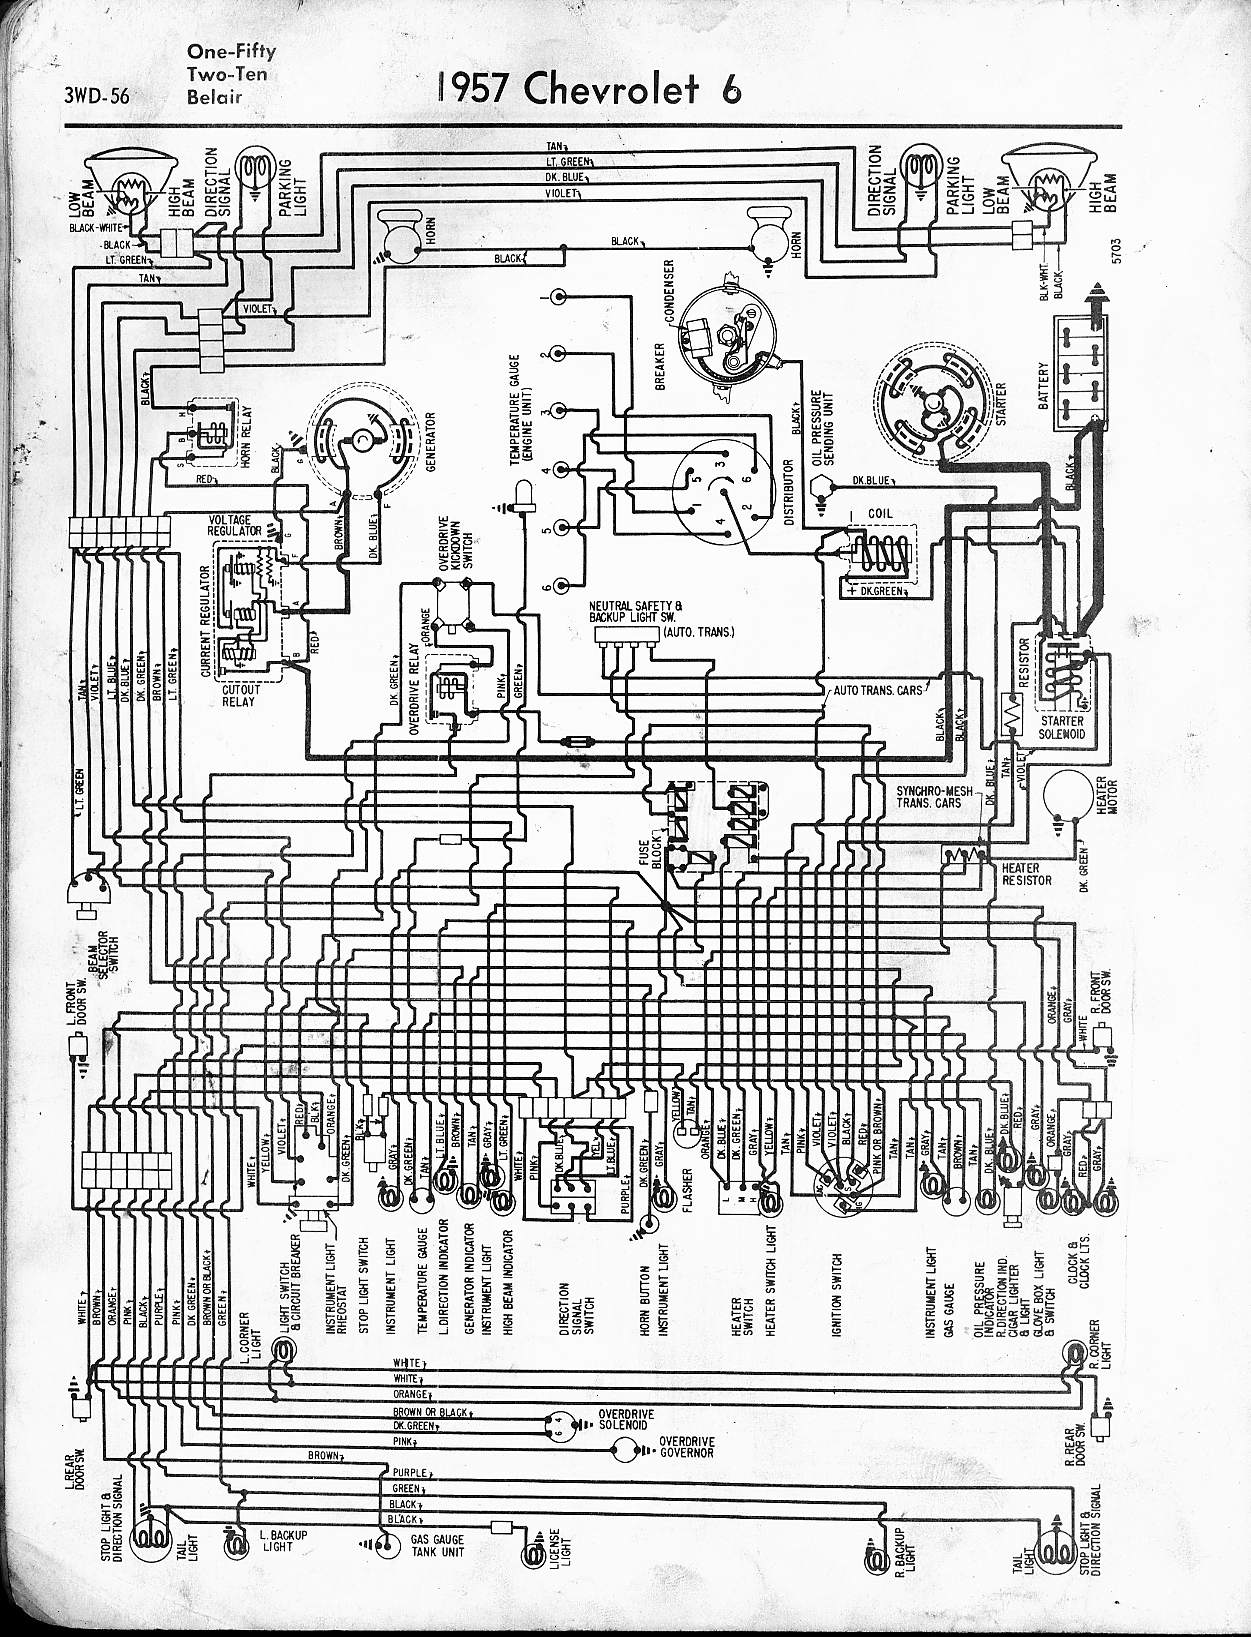 taylor t300m cab wiring diagram taylor auto wiring diagram schematic 1957 chevy tail light wiring bobcat t300 wiring schematic wiring on taylor t300m cab wiring diagram